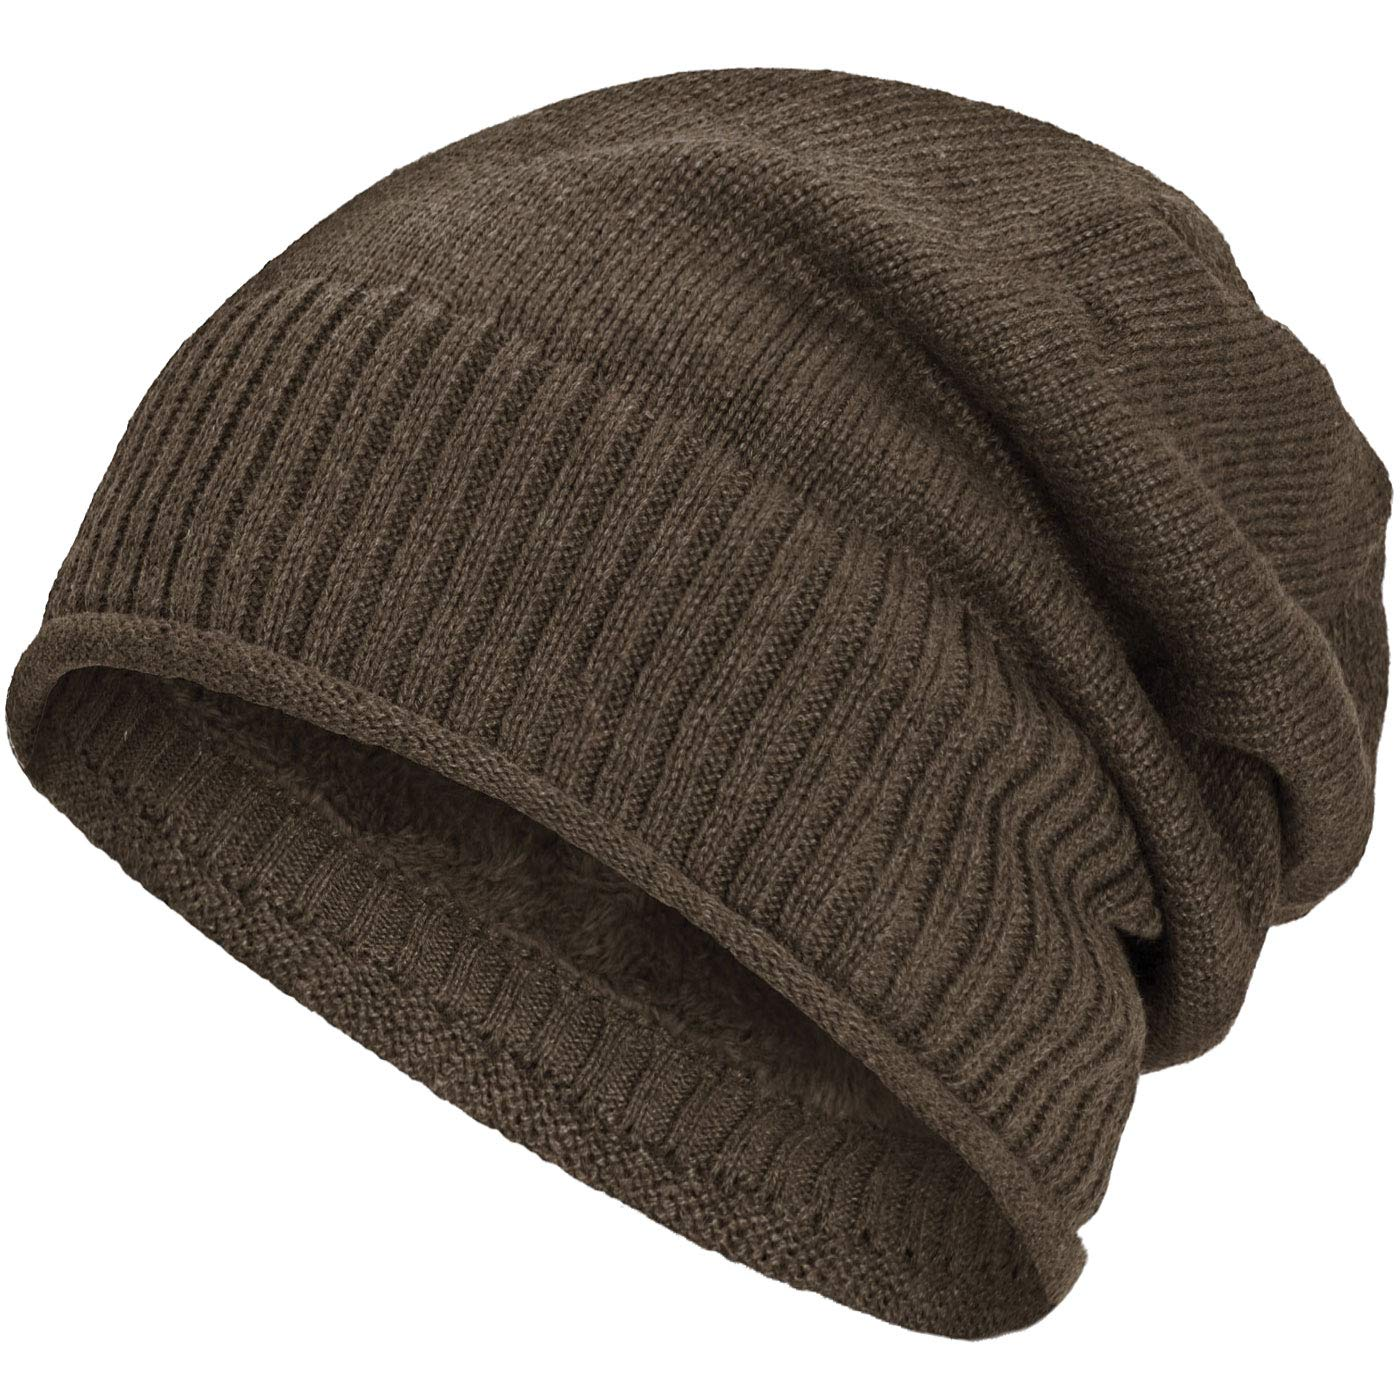 Compagno lined beanie winter hat fine knit design with a soft fleece lining Color:Brown